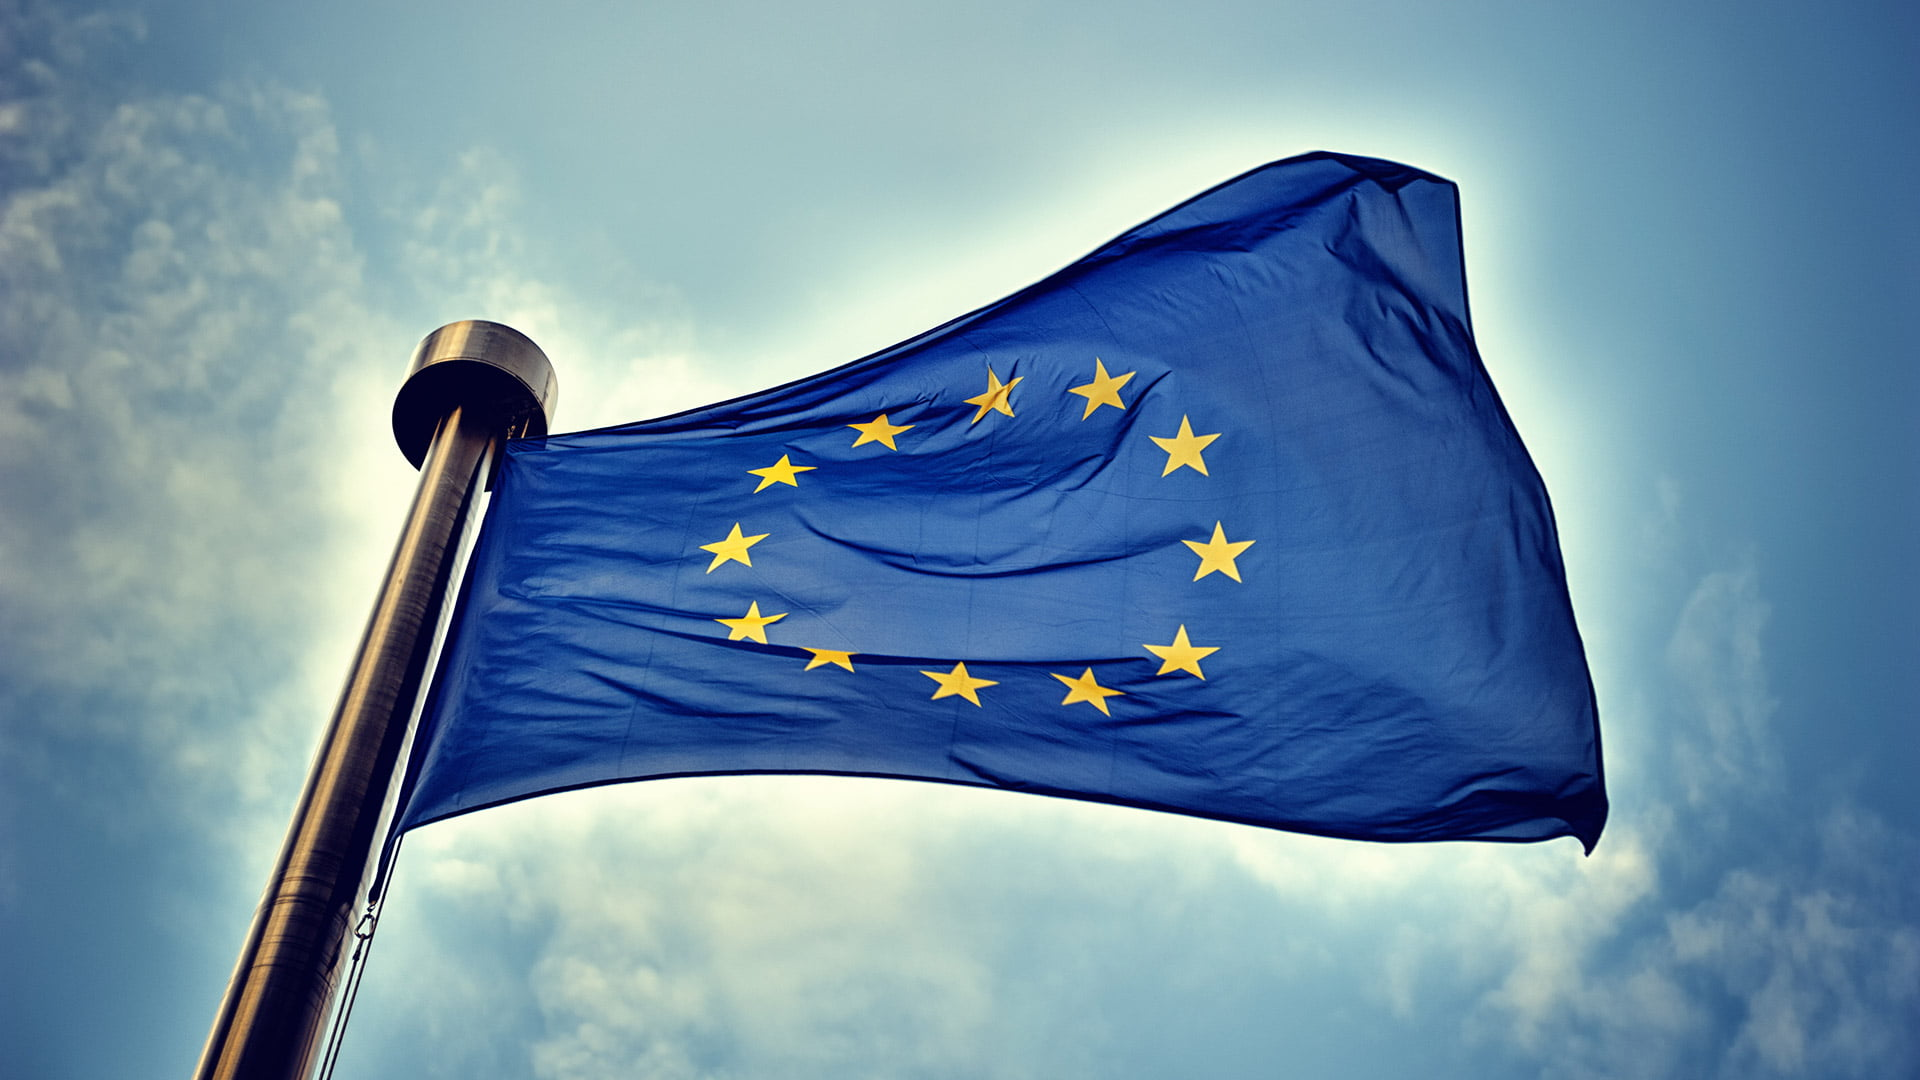 European regulators turning up the heat on Facebook, other social sites to modify terms